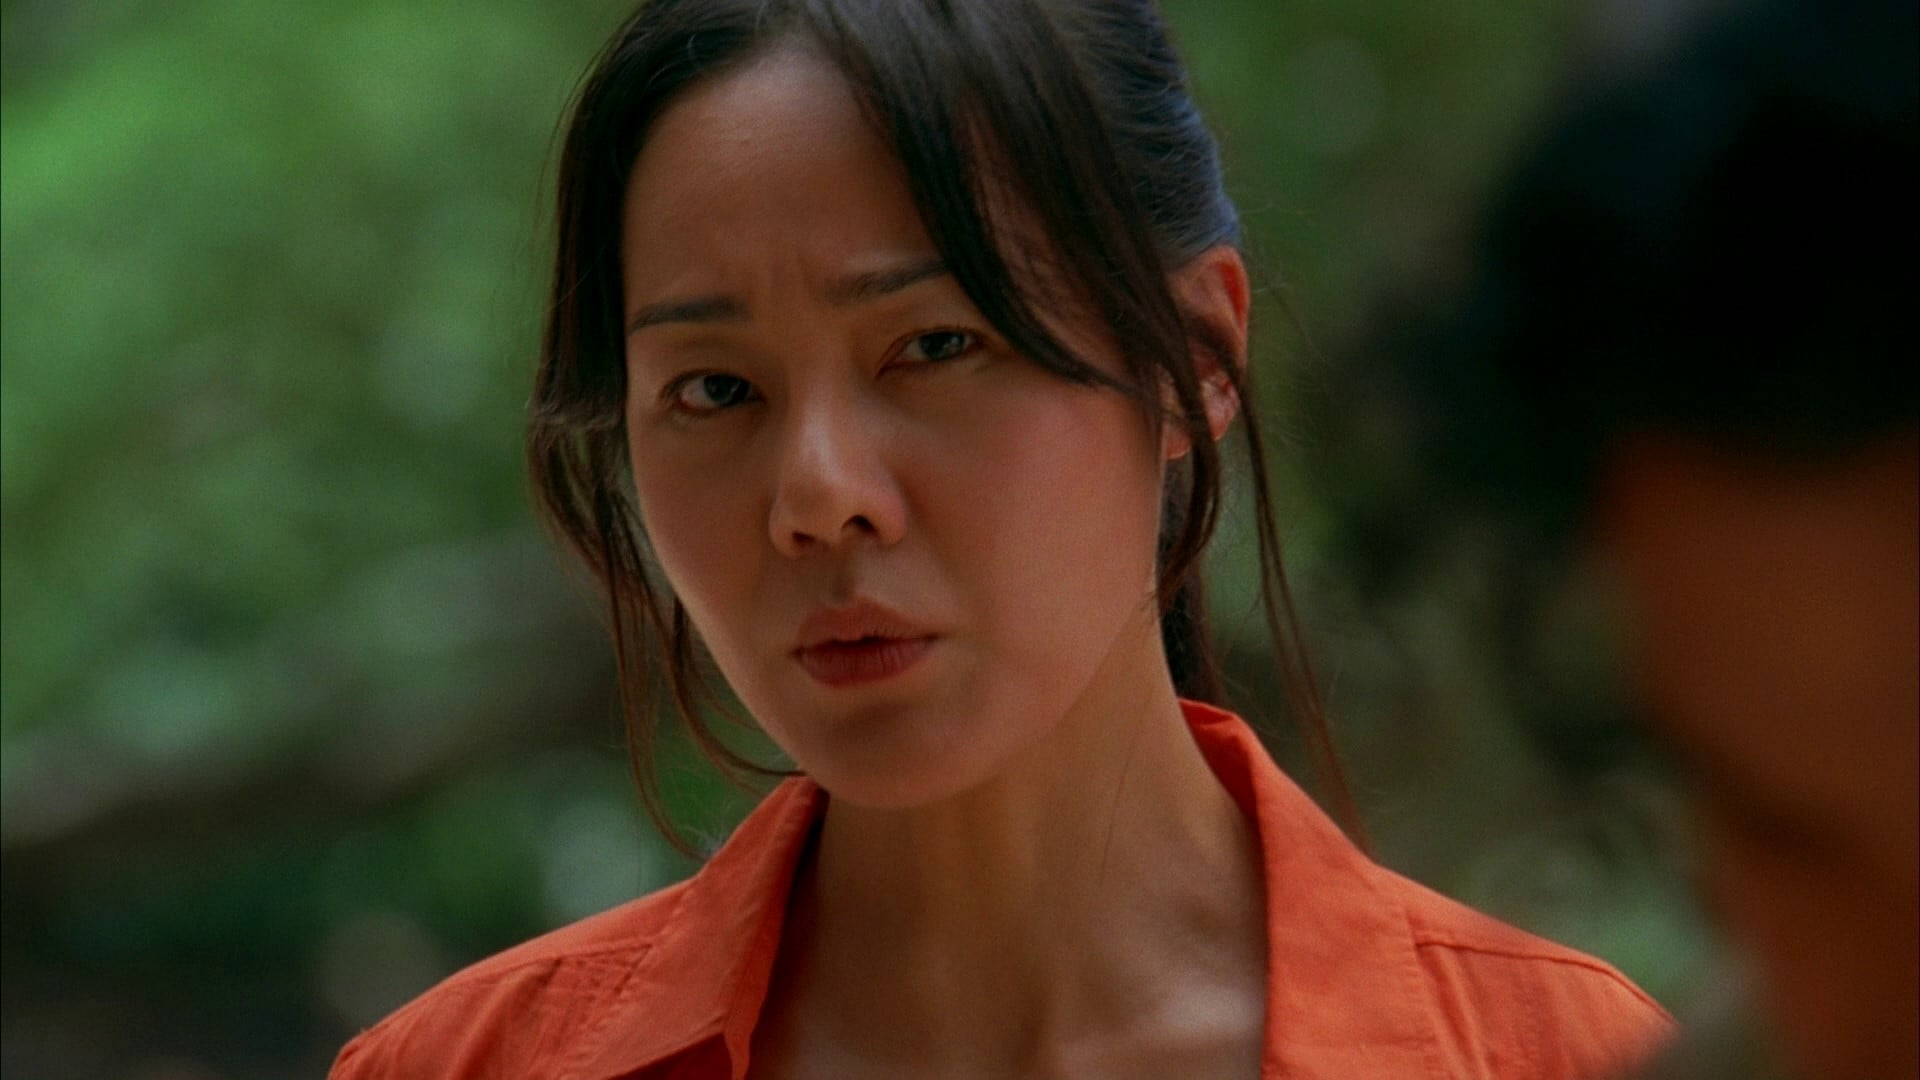 Lost: Season 3 x Episode 2 - free to watch online - TMovies